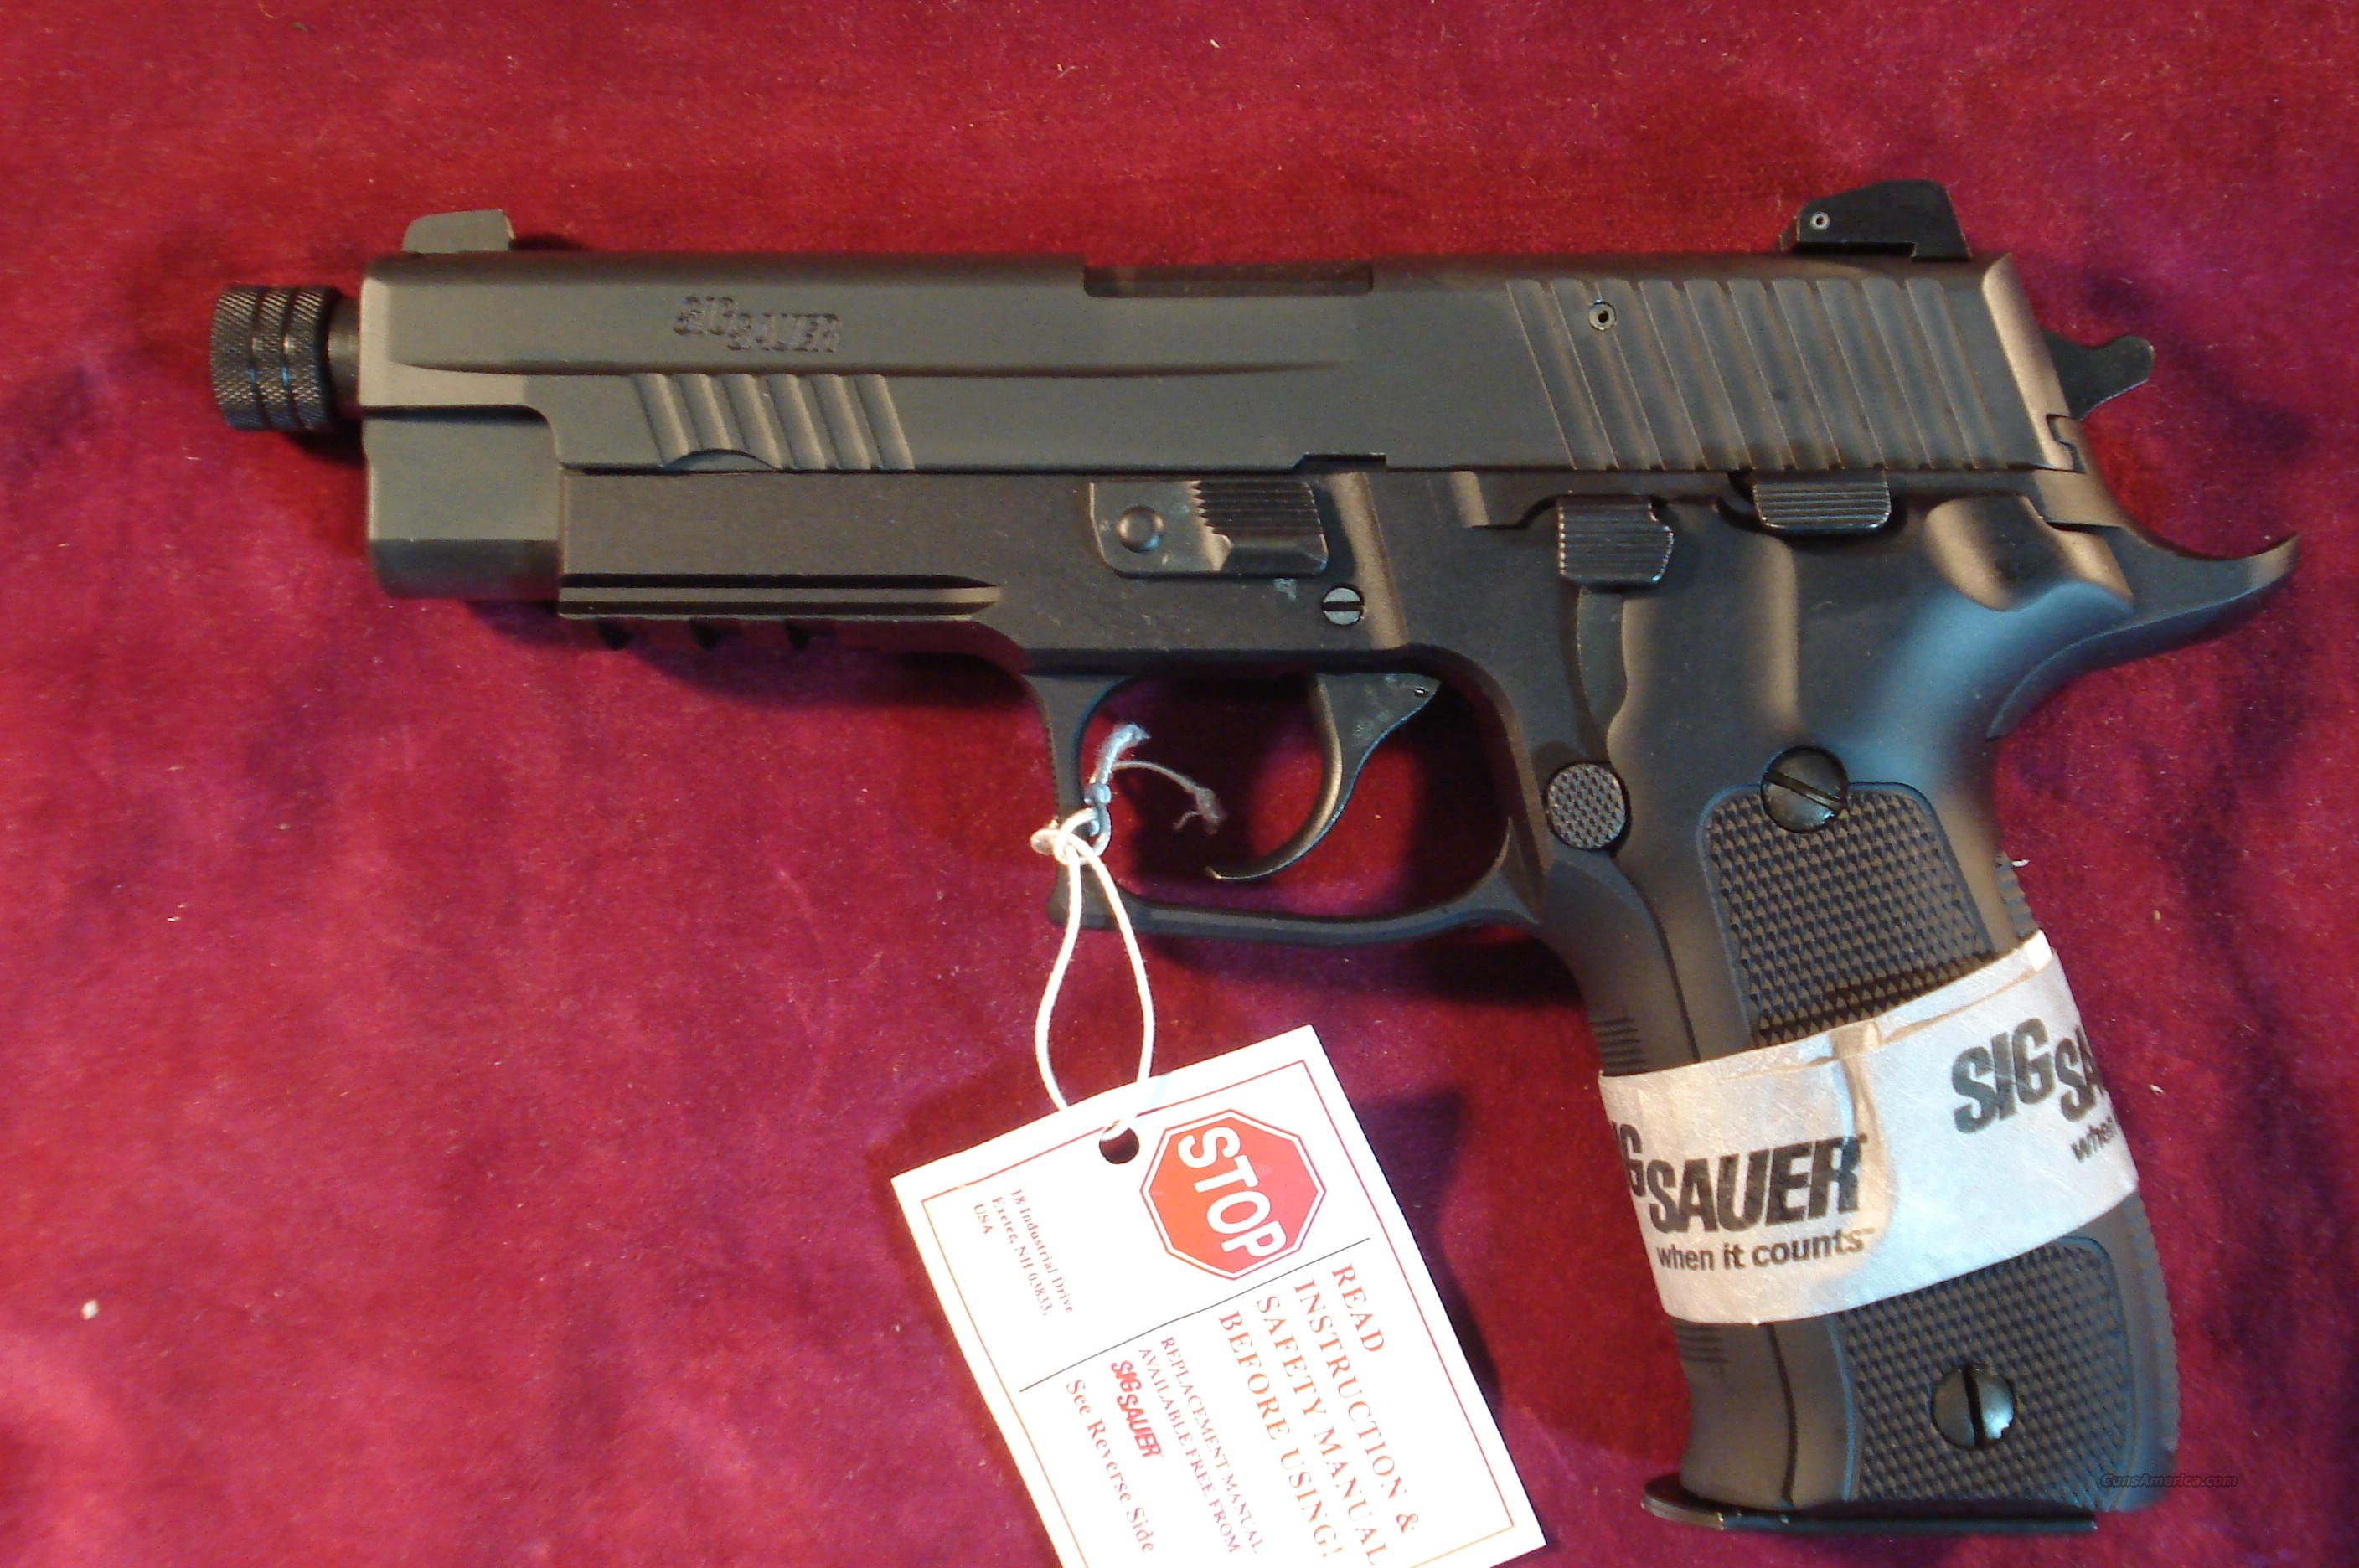 SIG SAUER P226 9MM THREADED BARREL BLACK FINISH NEW  Guns > Pistols > Sig - Sauer/Sigarms Pistols > P226